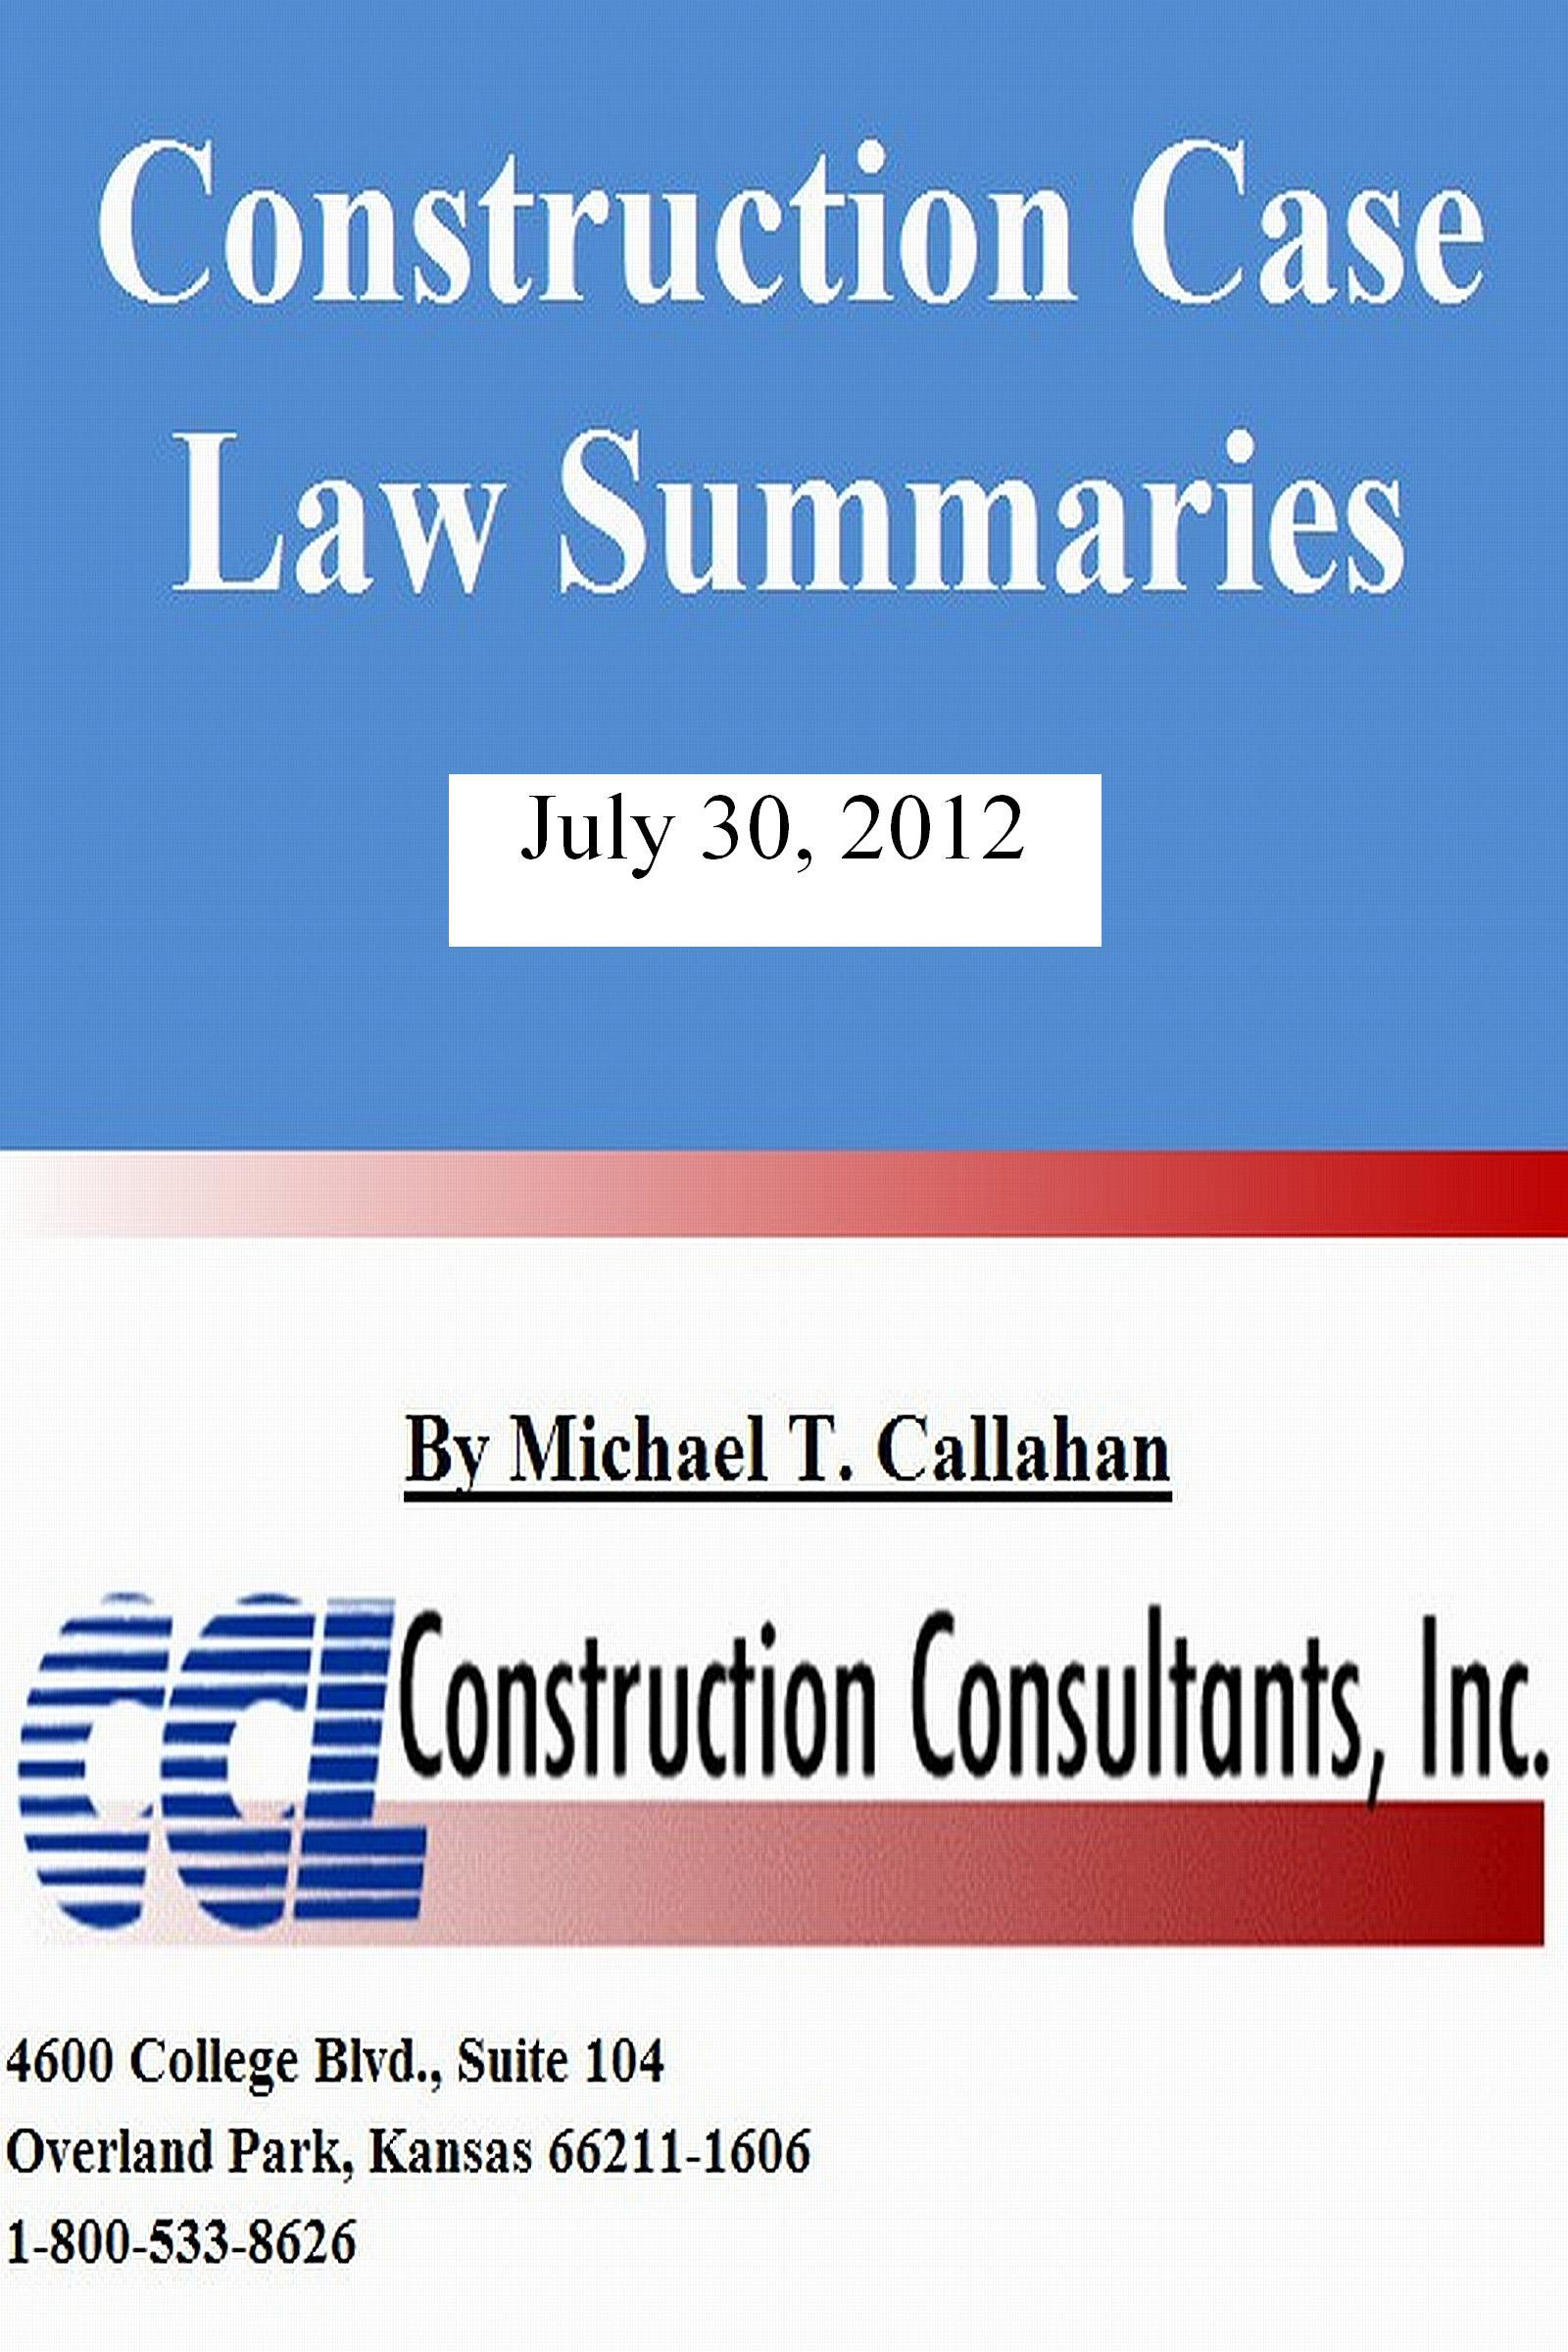 Construction Case Law Summaries: July 30, 2012